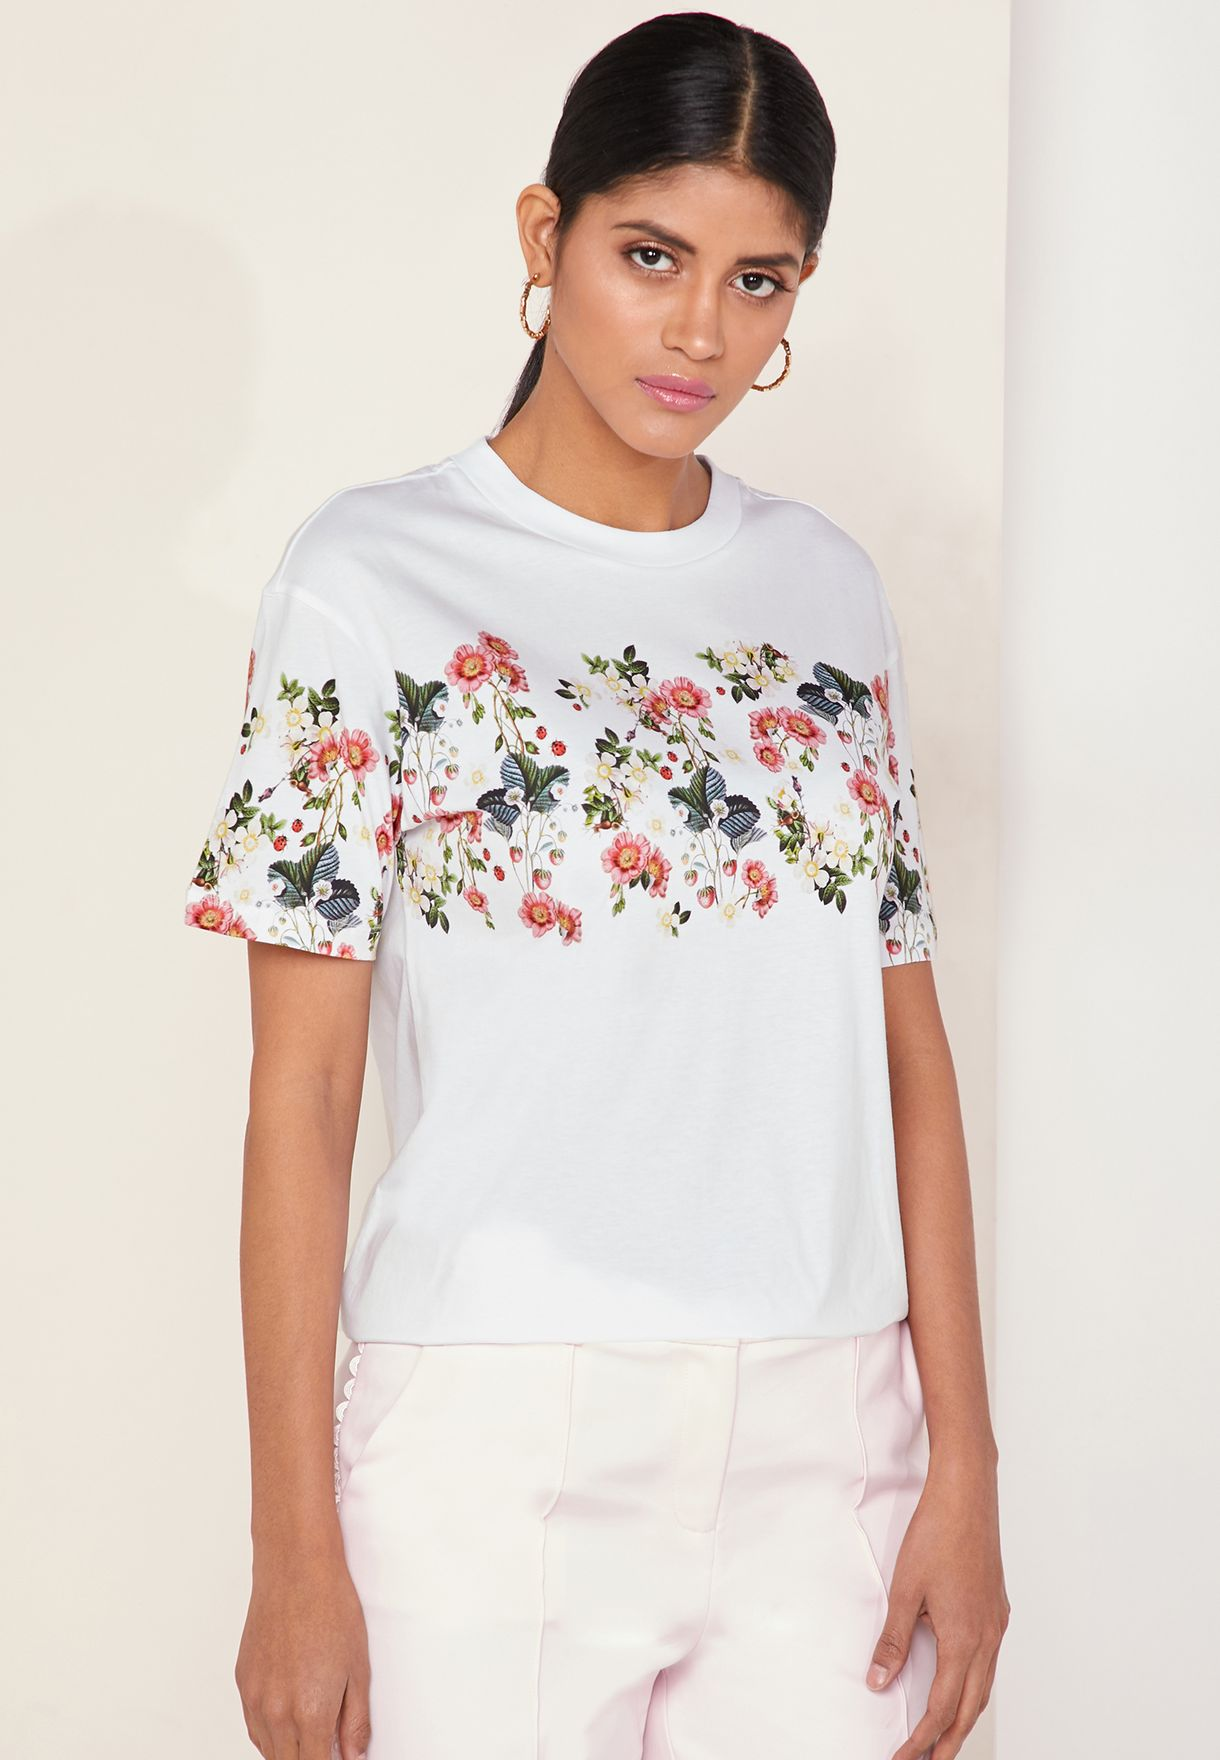 080f91362 Shop Ted baker prints Oracle Floral Print T-Shirt 154909 for Women ...